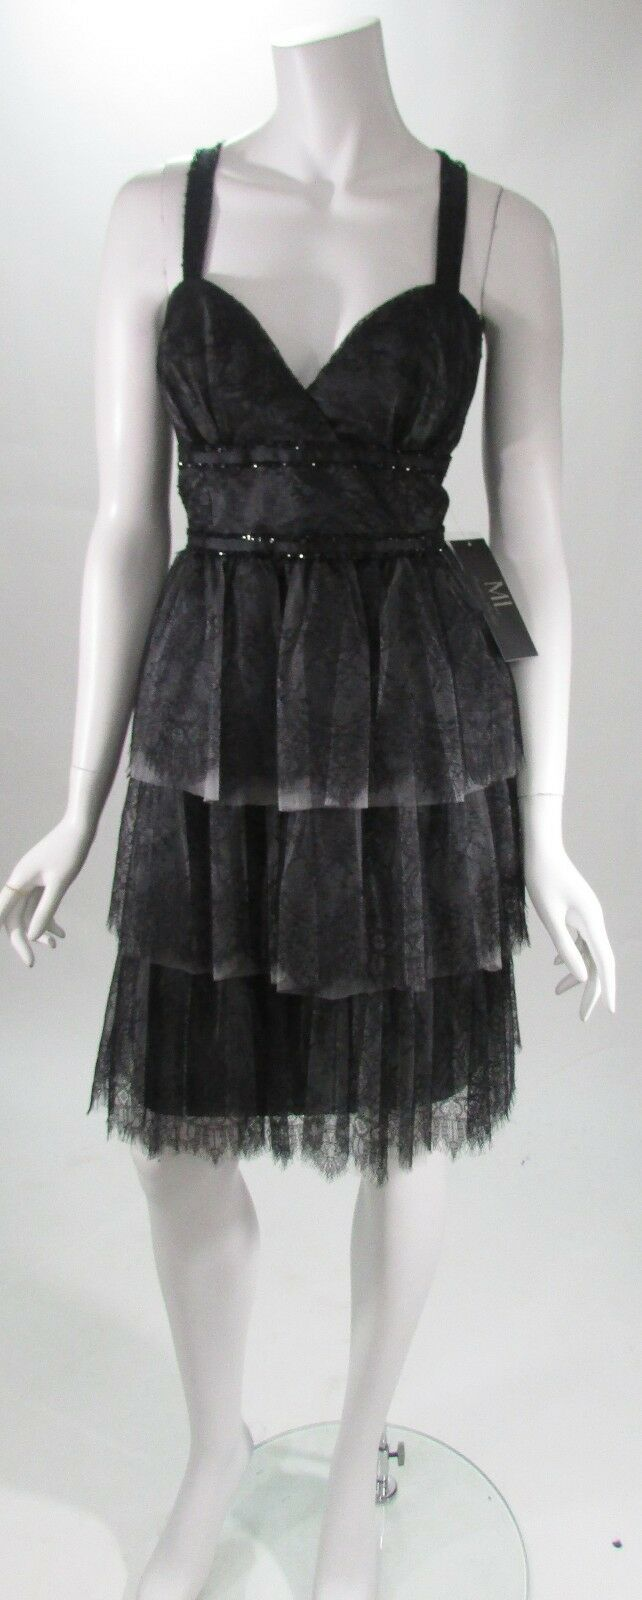 ML Monique Lhuillier Black Lace Bead Sweetheart Tiered Cocktail Dress Sz 12 NWT